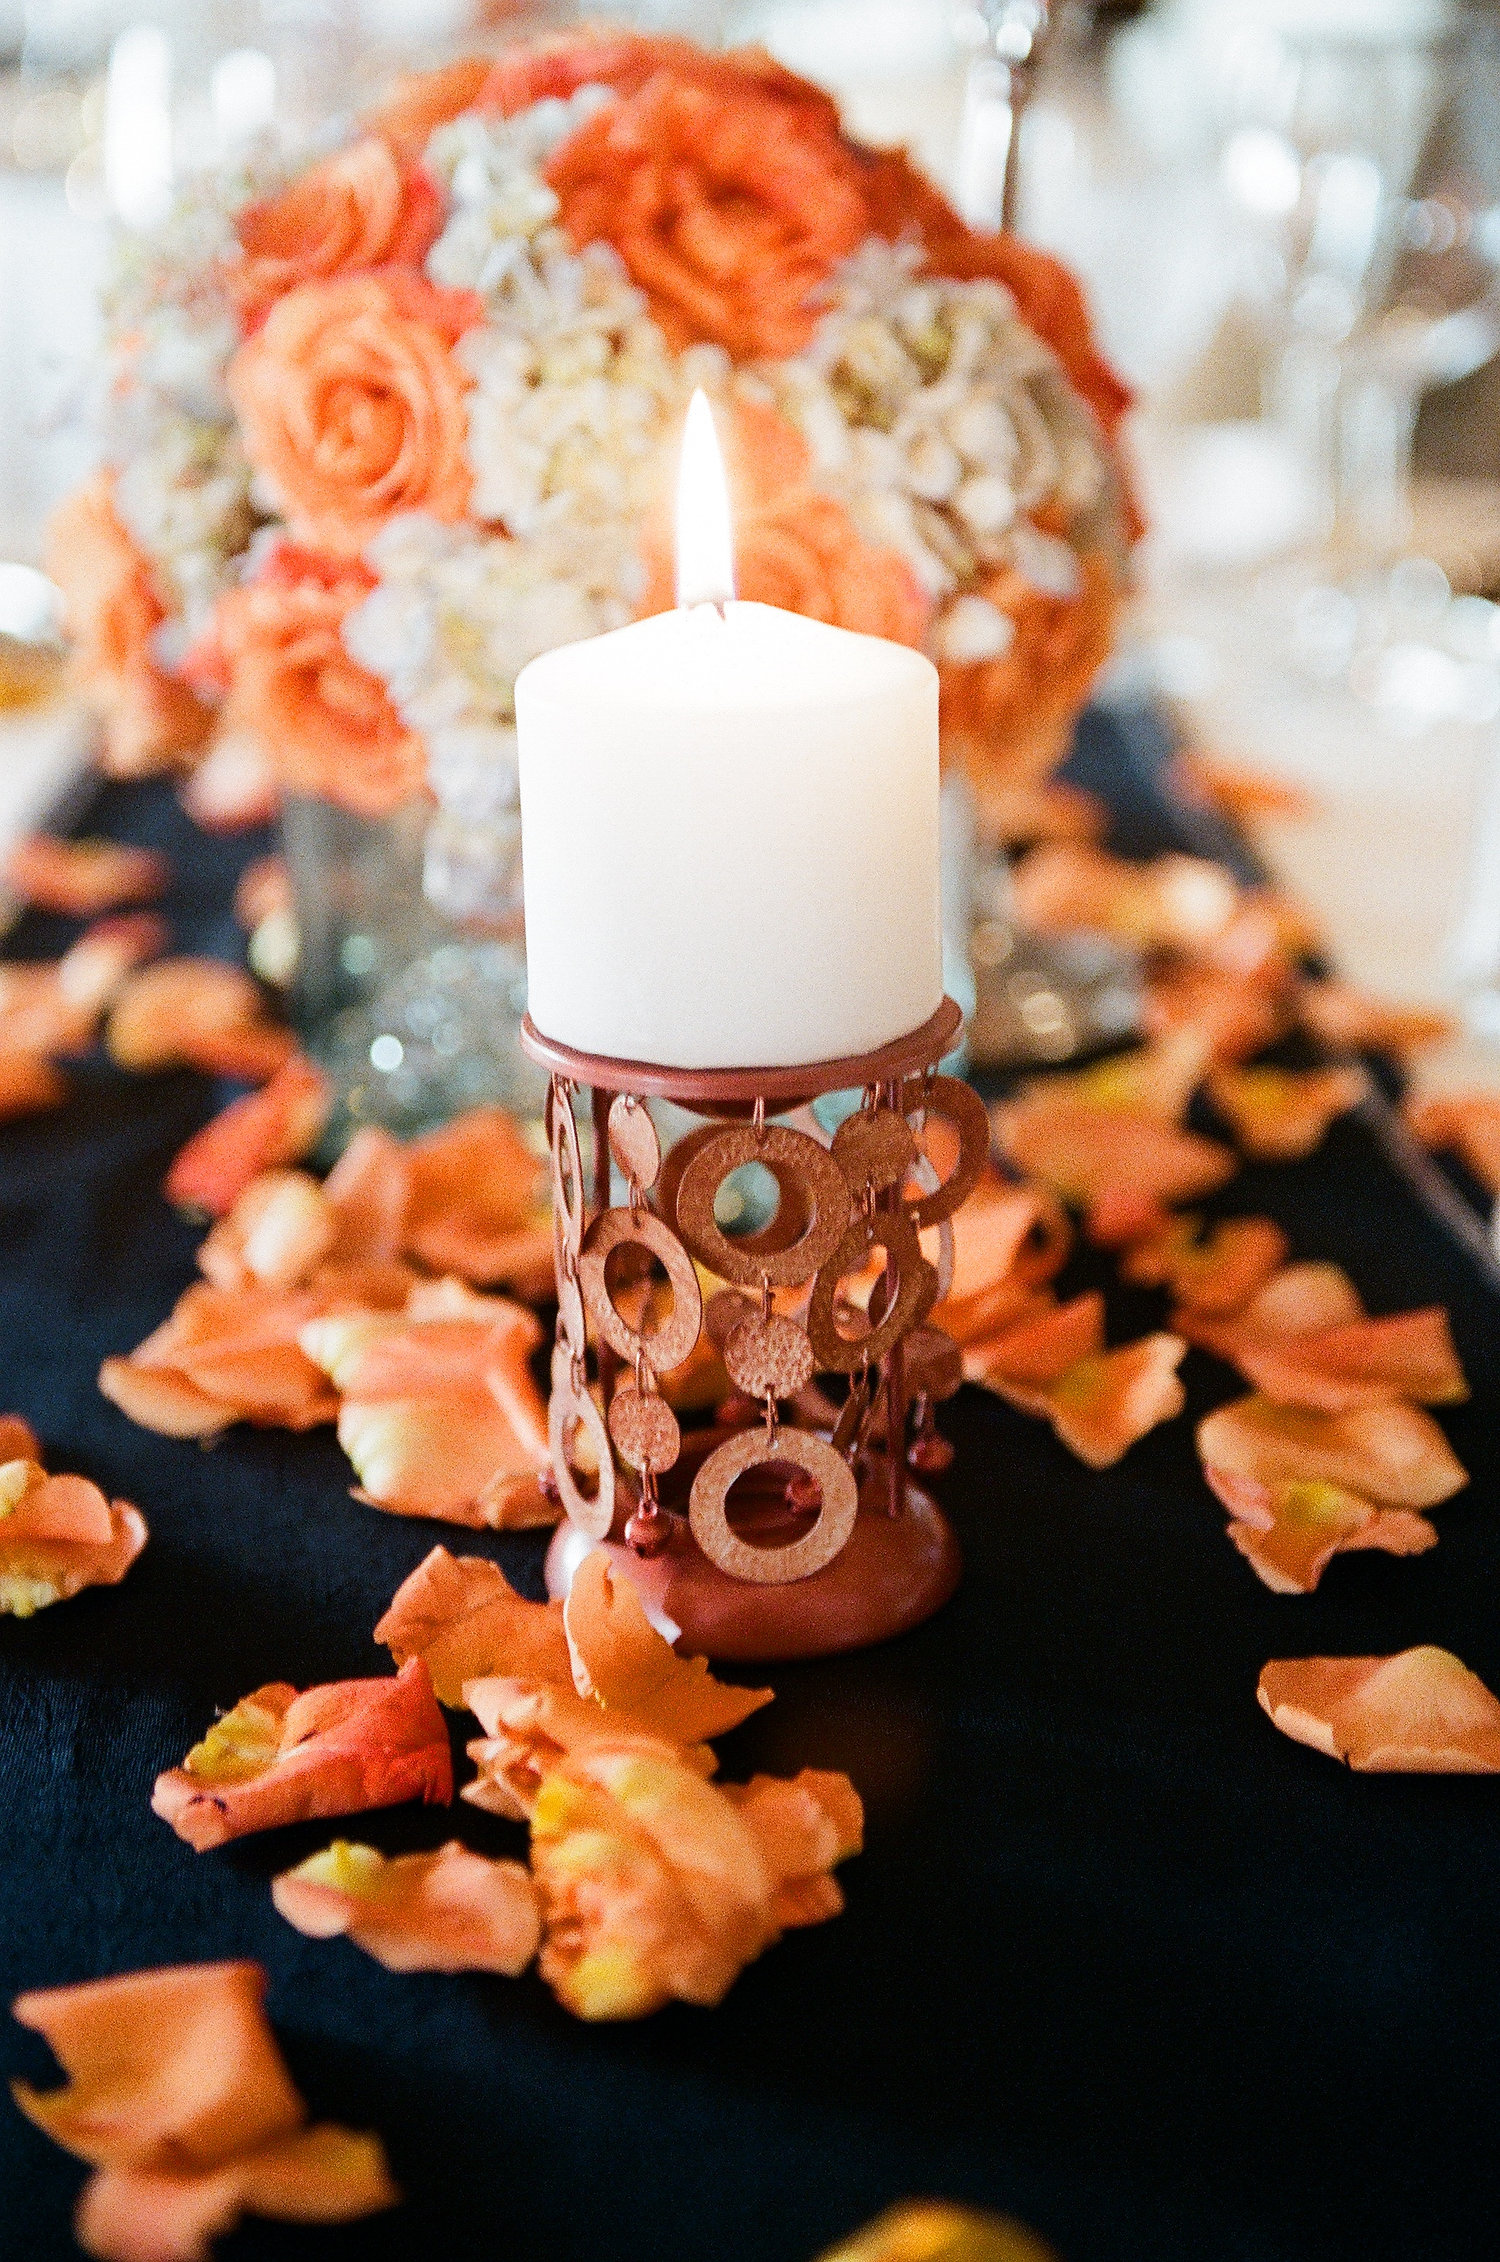 Wedding Table Candle and Flowers